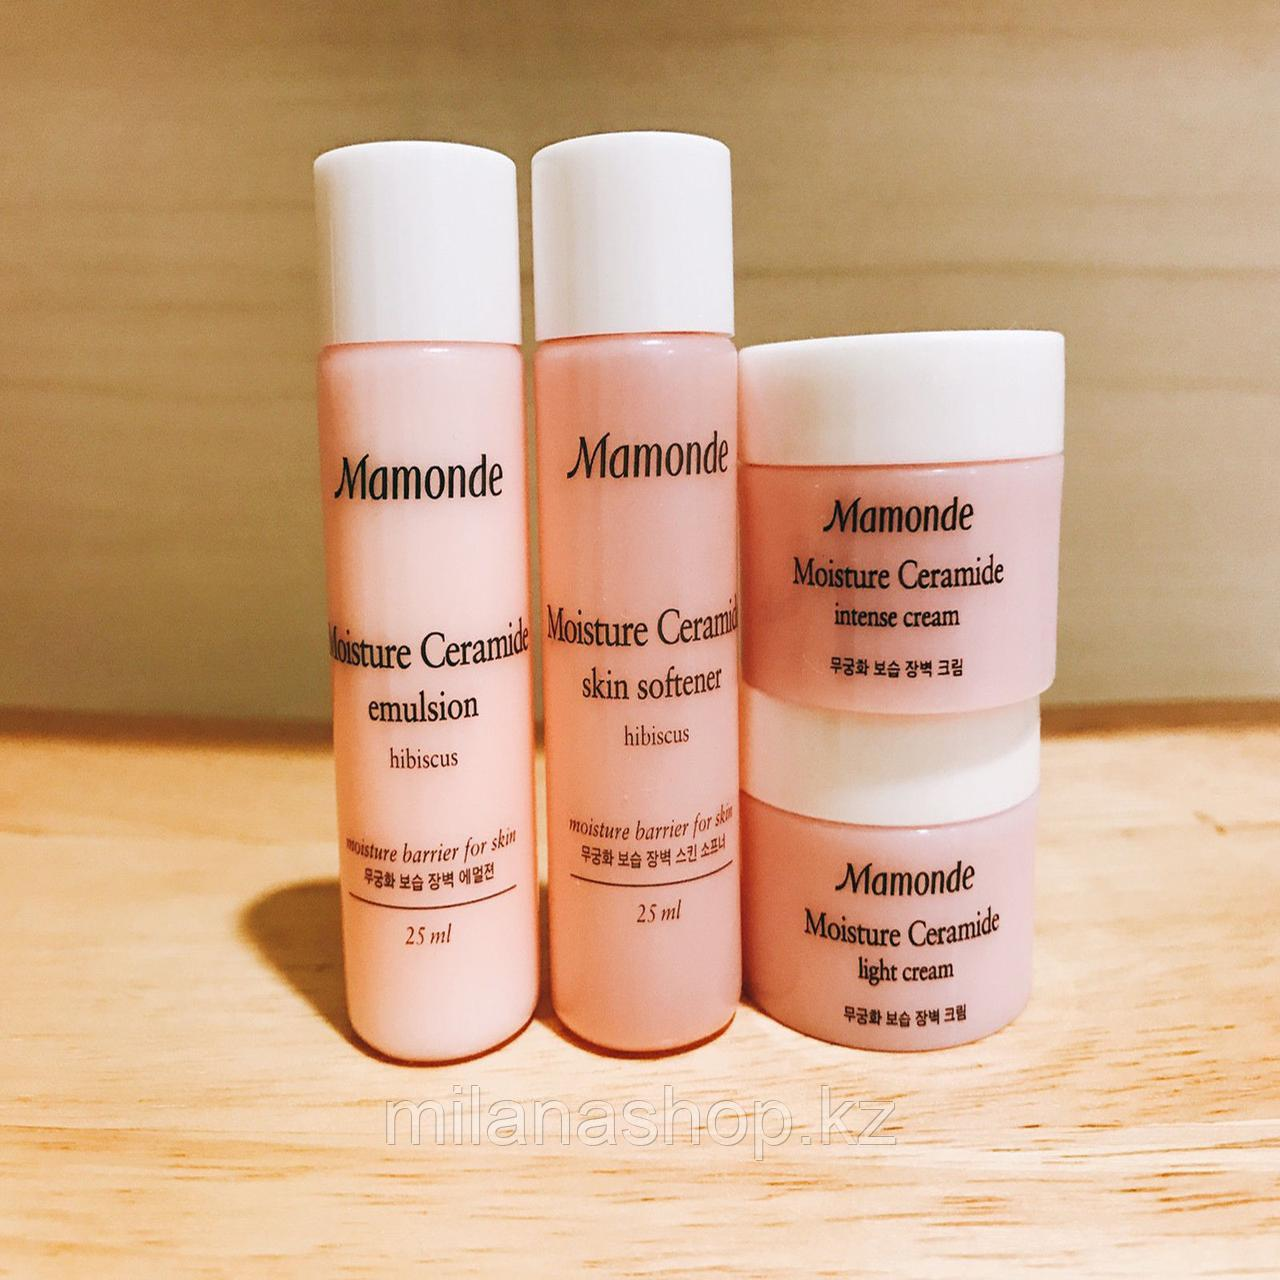 Mamonde vital vitamin special mini kit flower - мини сет